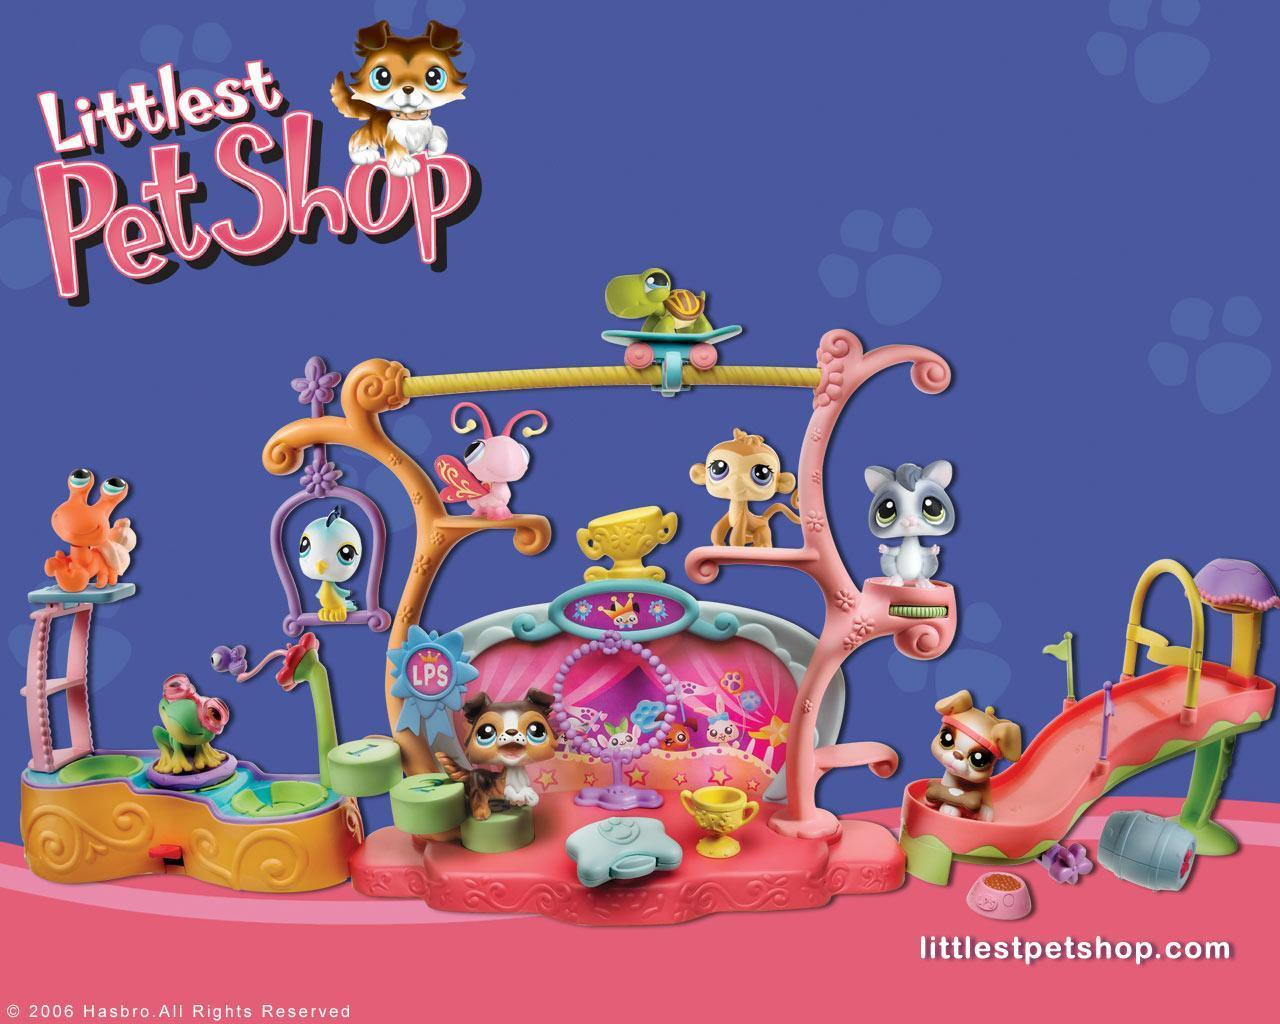 toys images littlest pet shops hd wallpaper and background